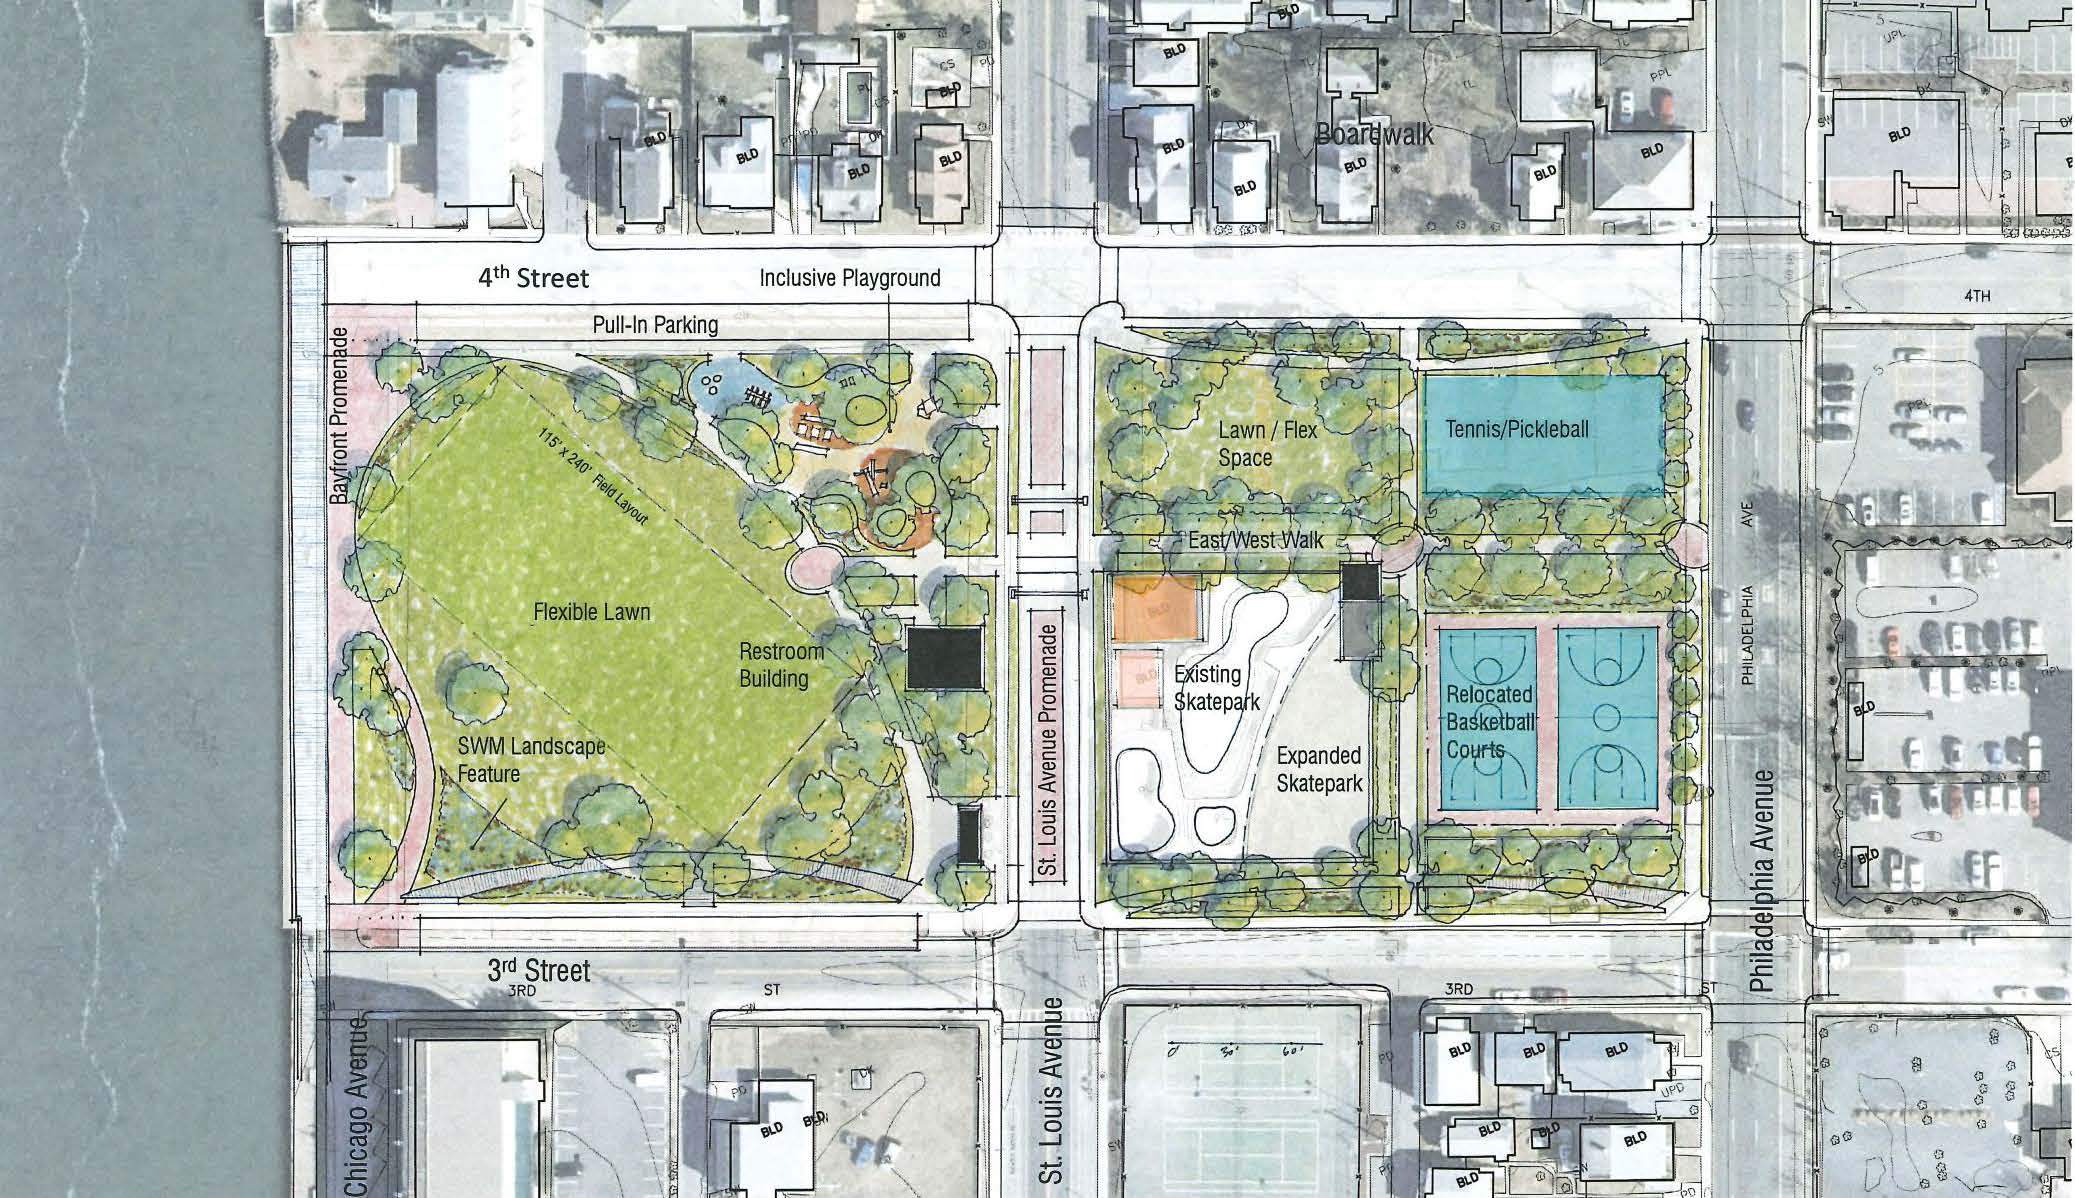 OC Unlikely To Include Road Closure In Park Redevelopment; Complex Plans Conceptual At This Time